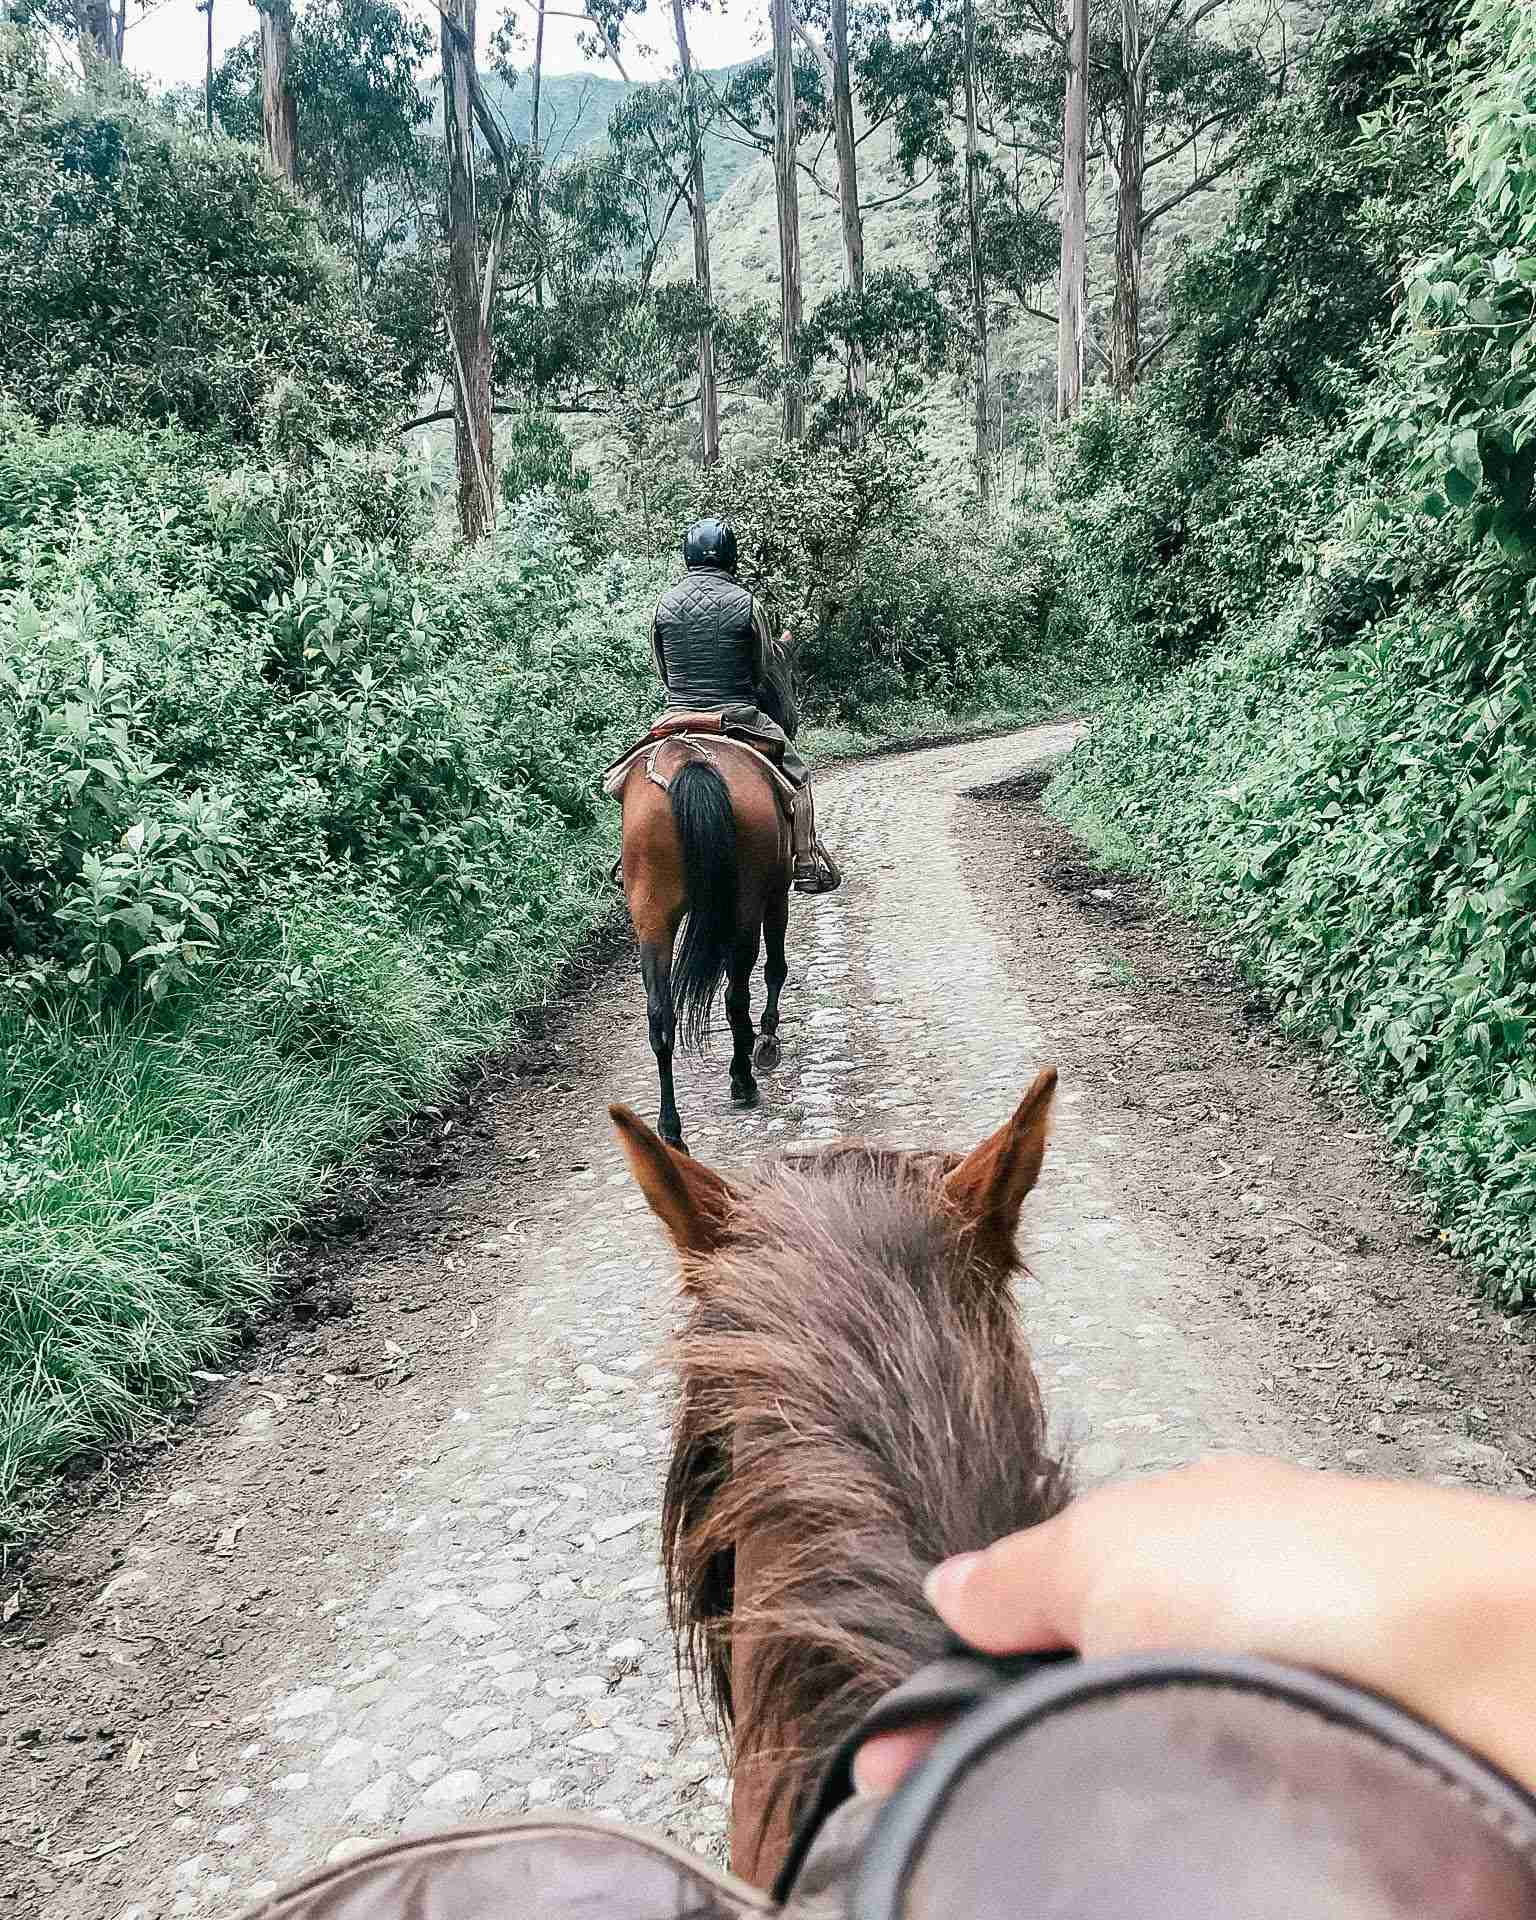 Horseback riding at Hacienda Zuleta